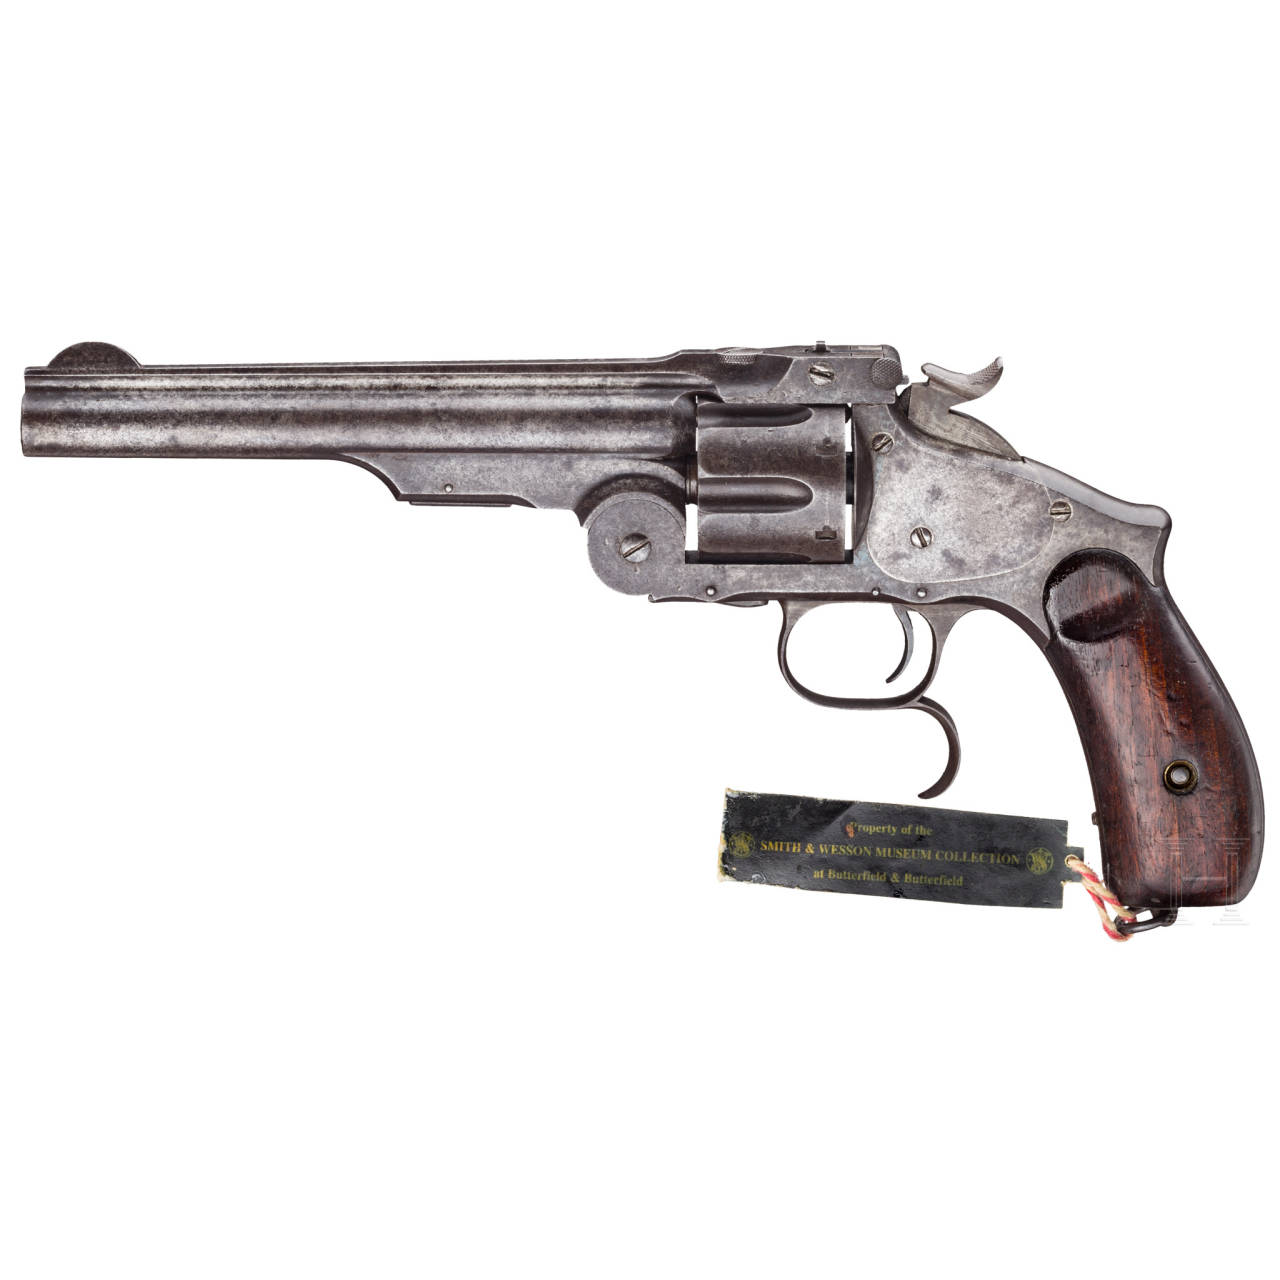 Smith & Wesson New Model No. 3, Ludwig Loewe, Berlin